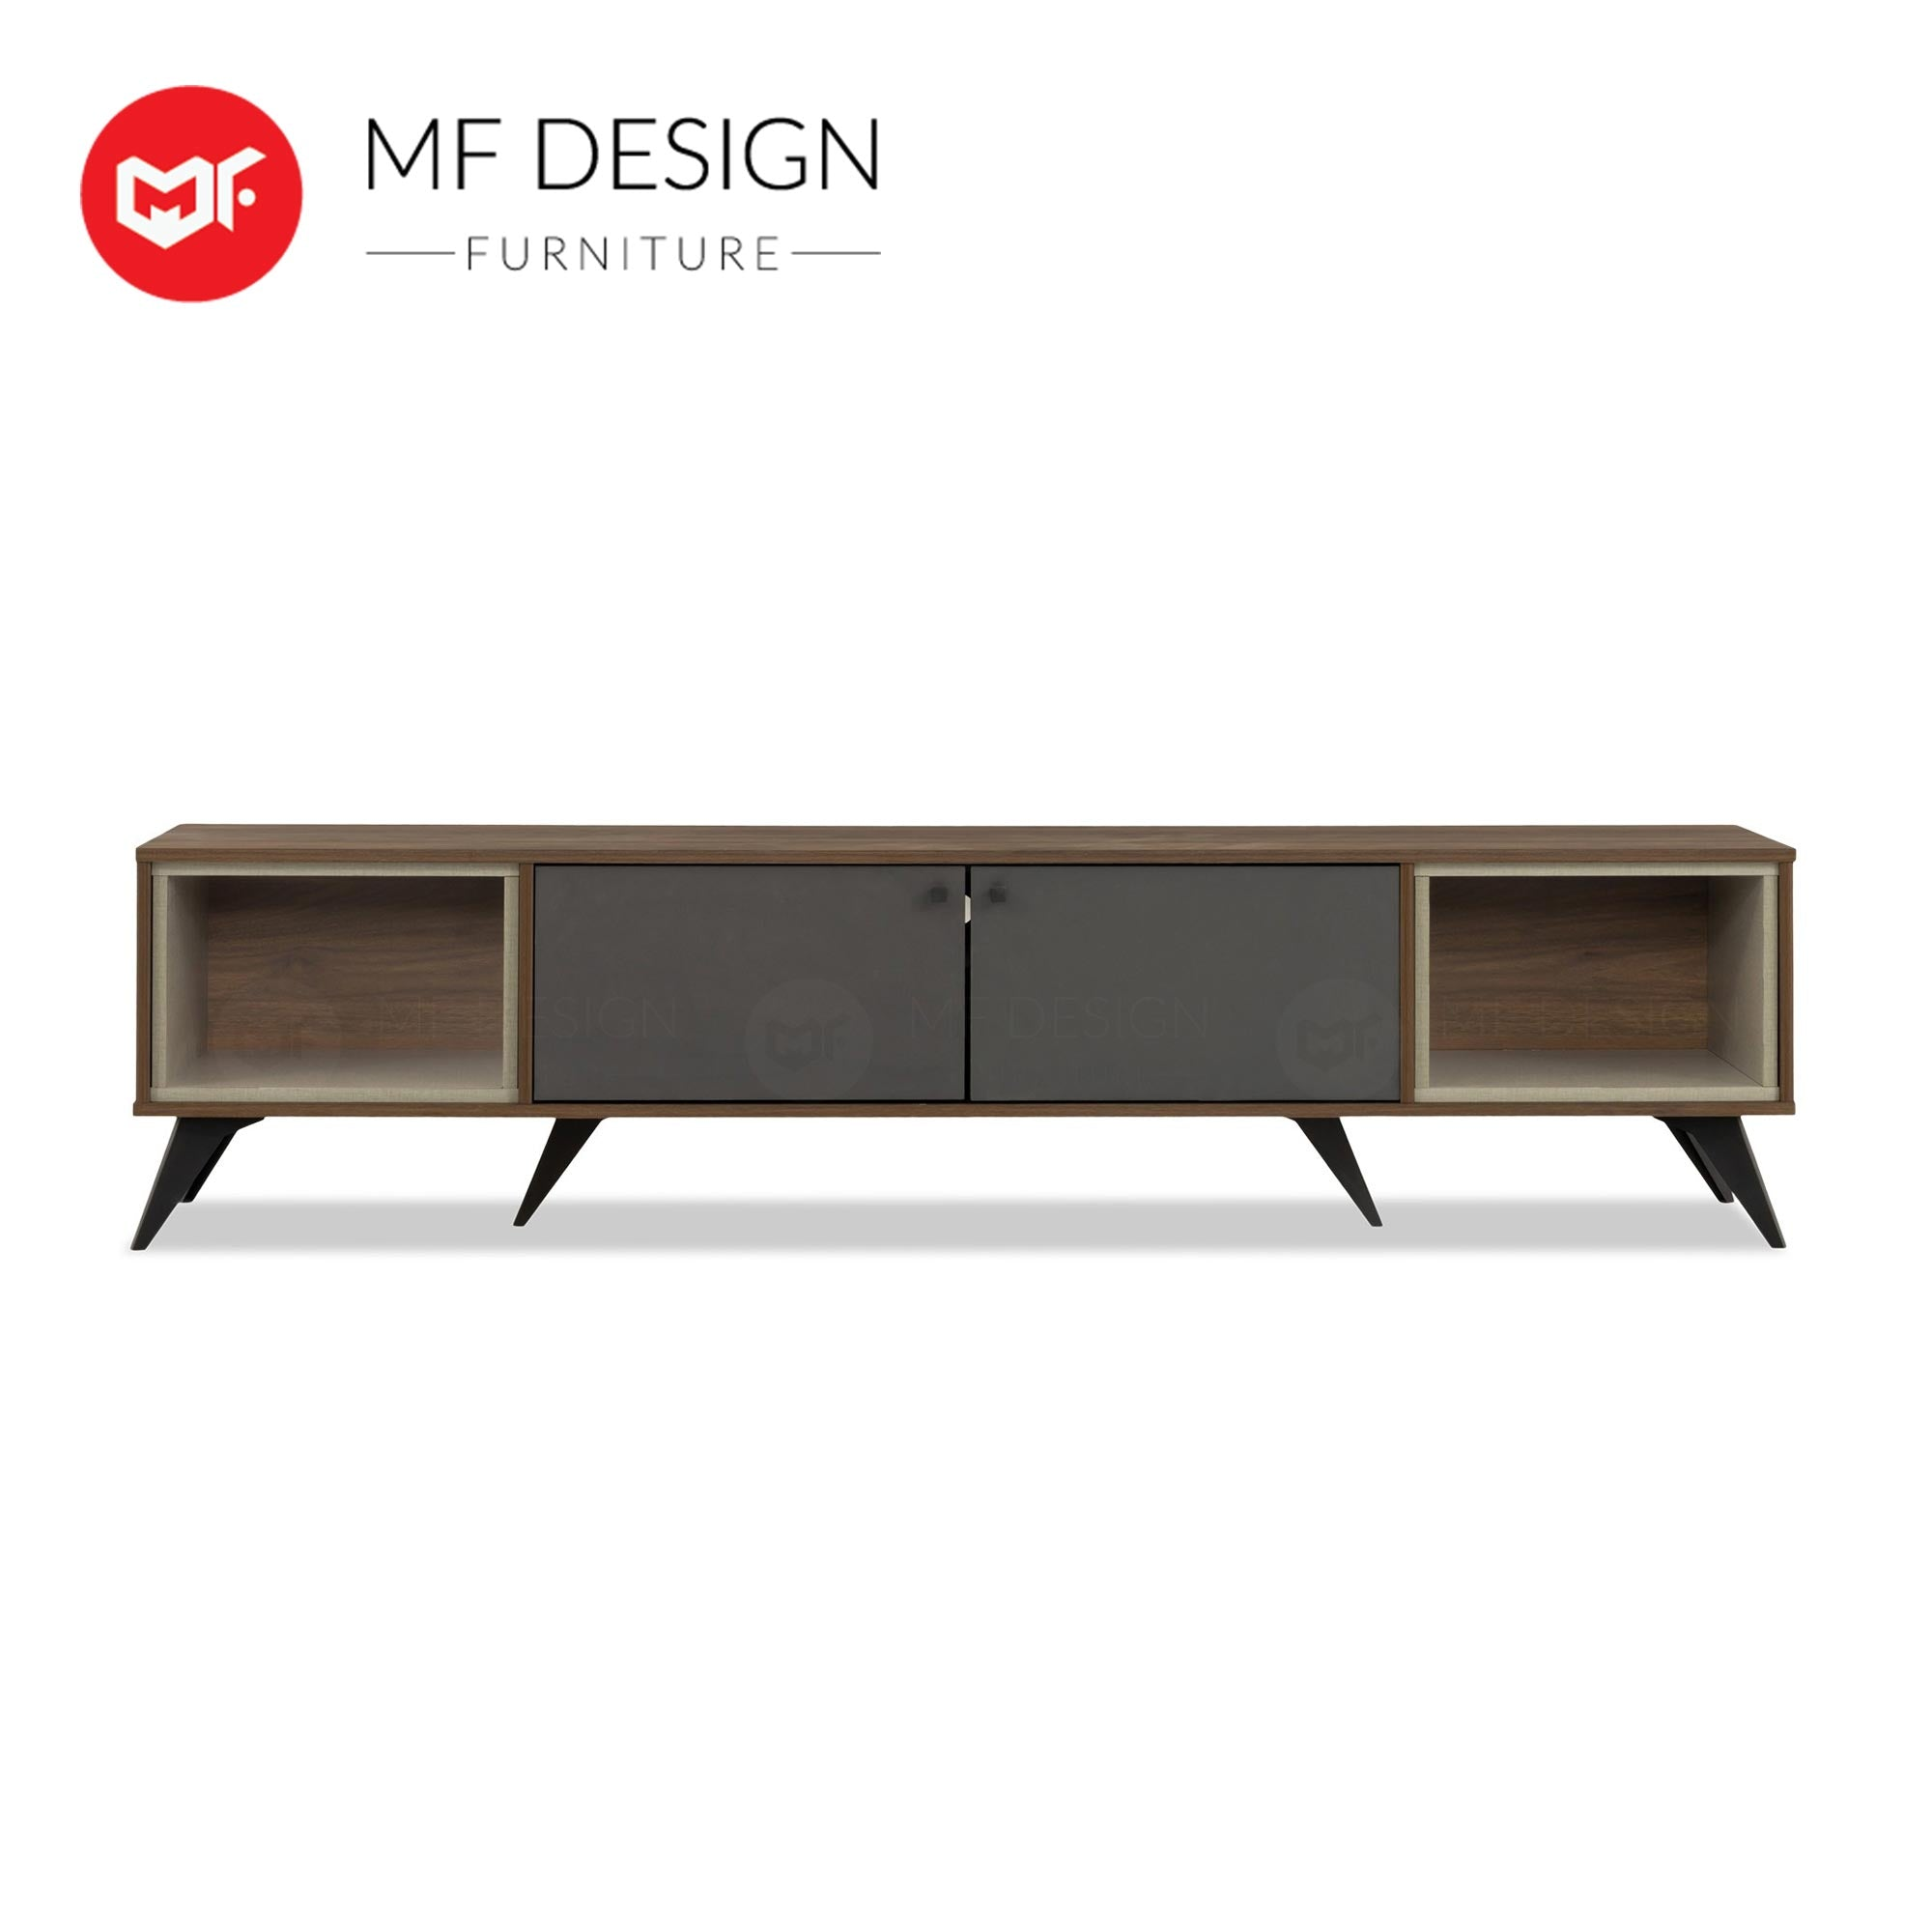 MF DESIGN CARMEN 6 FEET TV CABINET